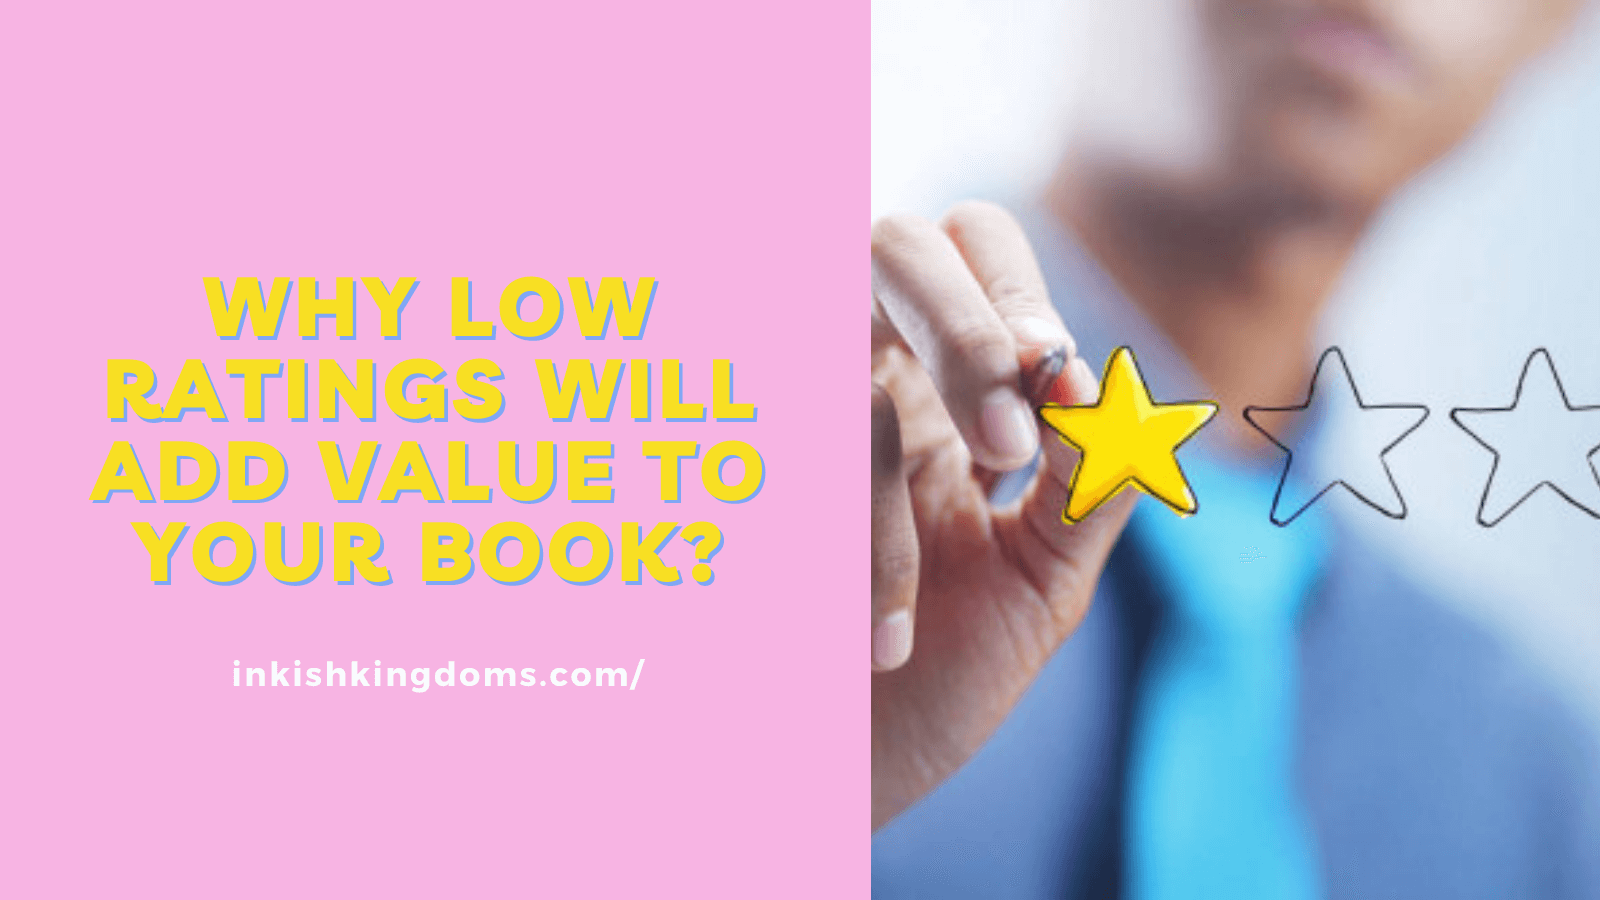 Why low ratings will add value to your book? man drawing a yellow star